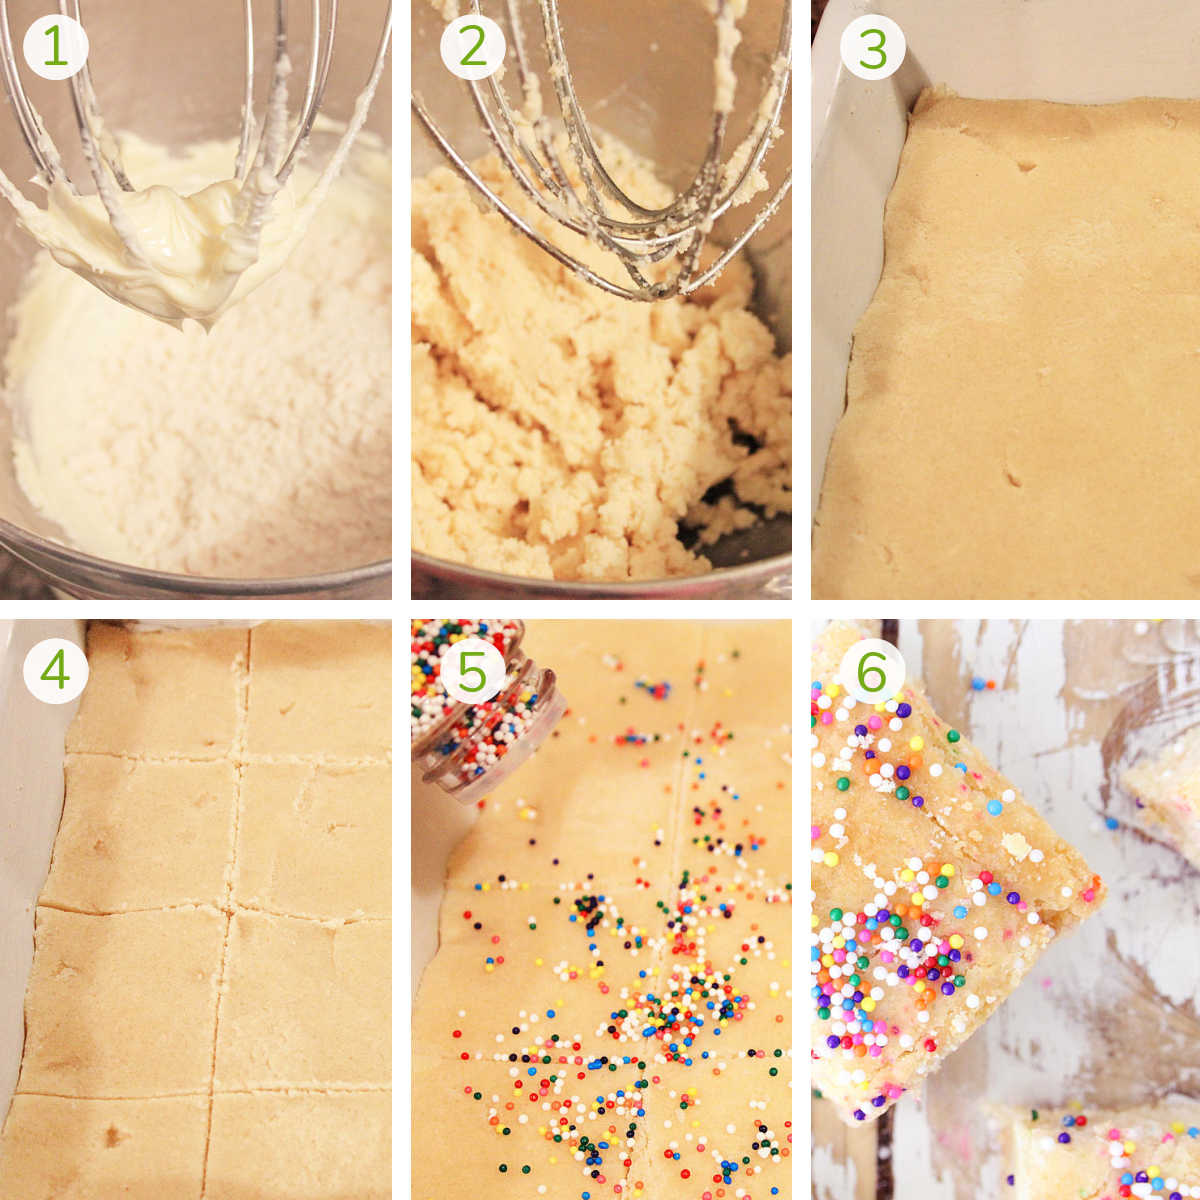 six process photos showing how to mix the dough, press it in a pan, slice, top with nonpareils and bake.